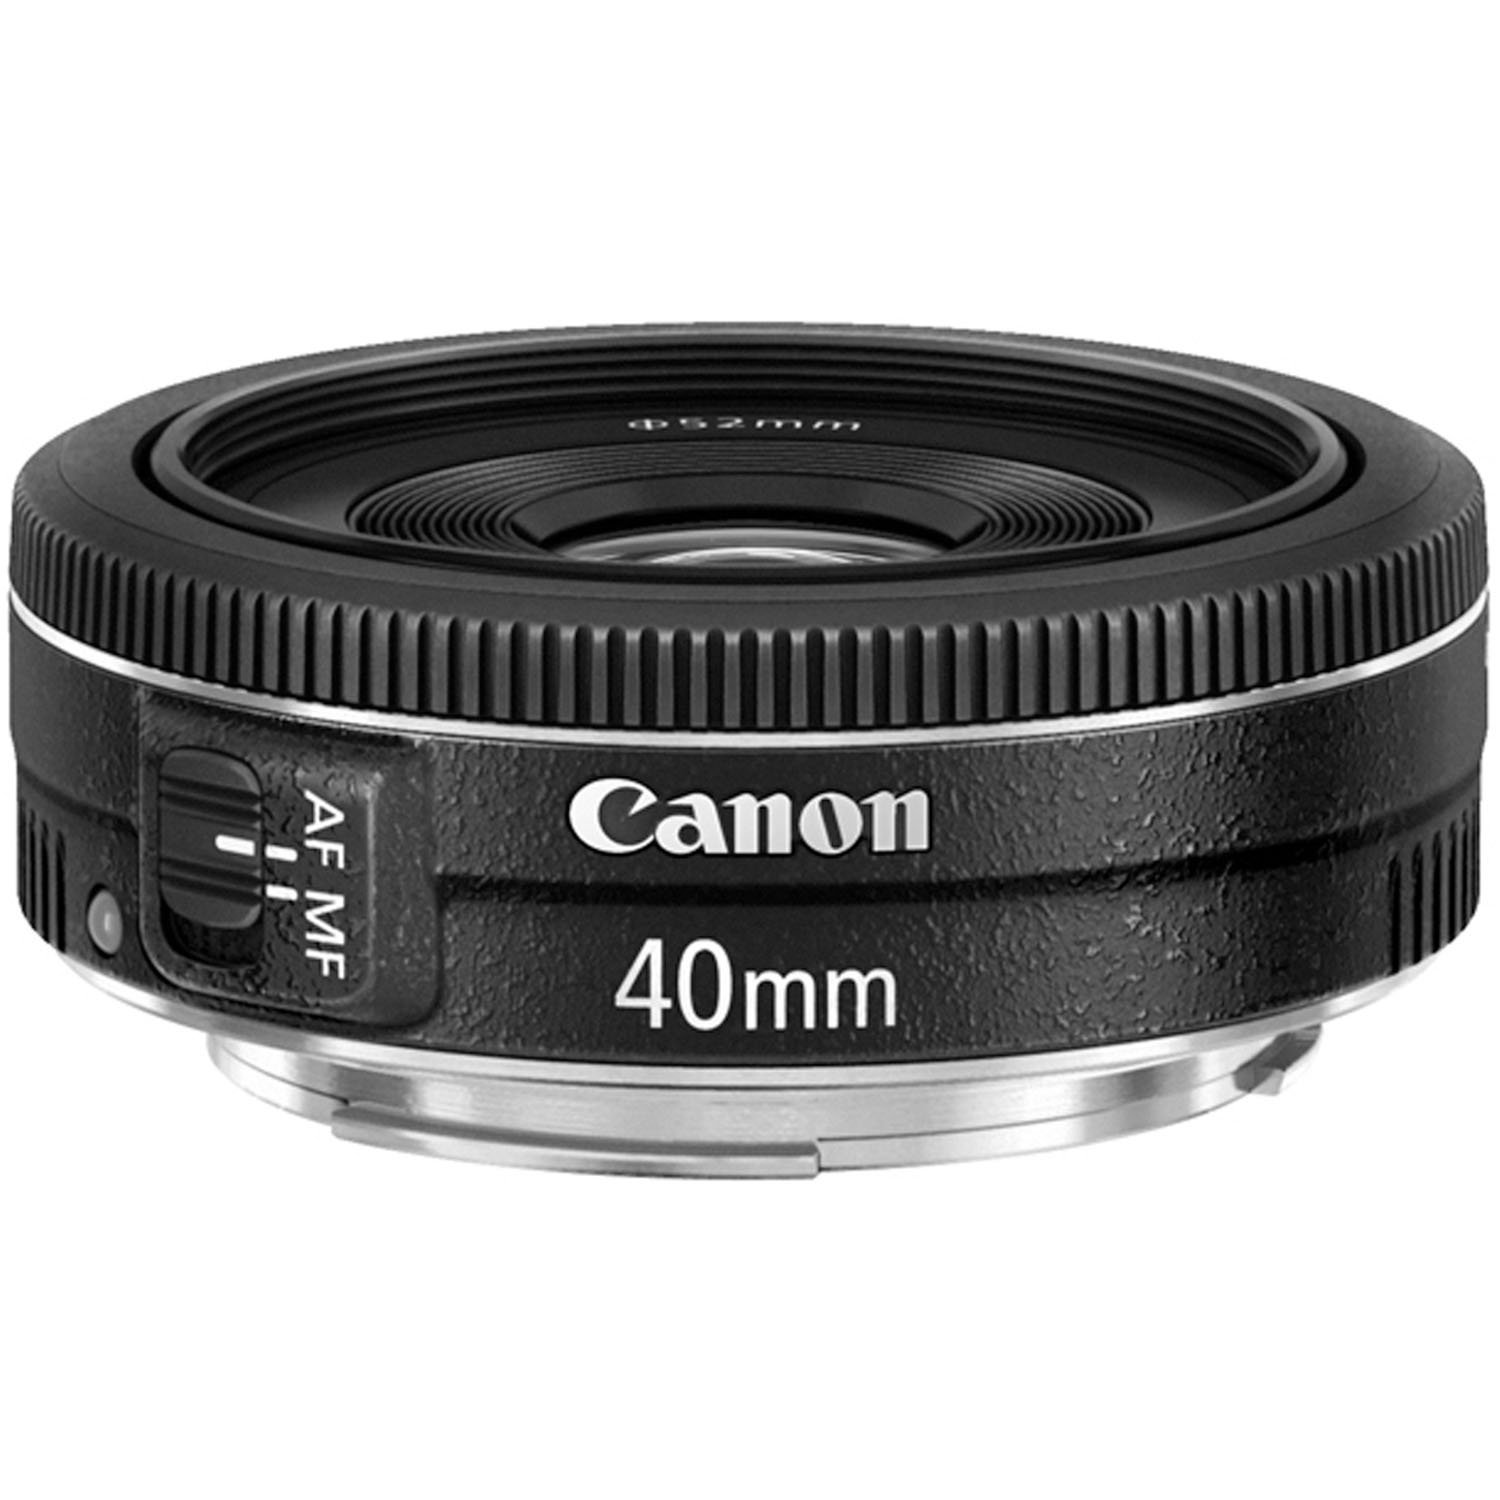 Canon EF 40mm f/2.8 STM Lens - Fixed by Canon (Image #1)